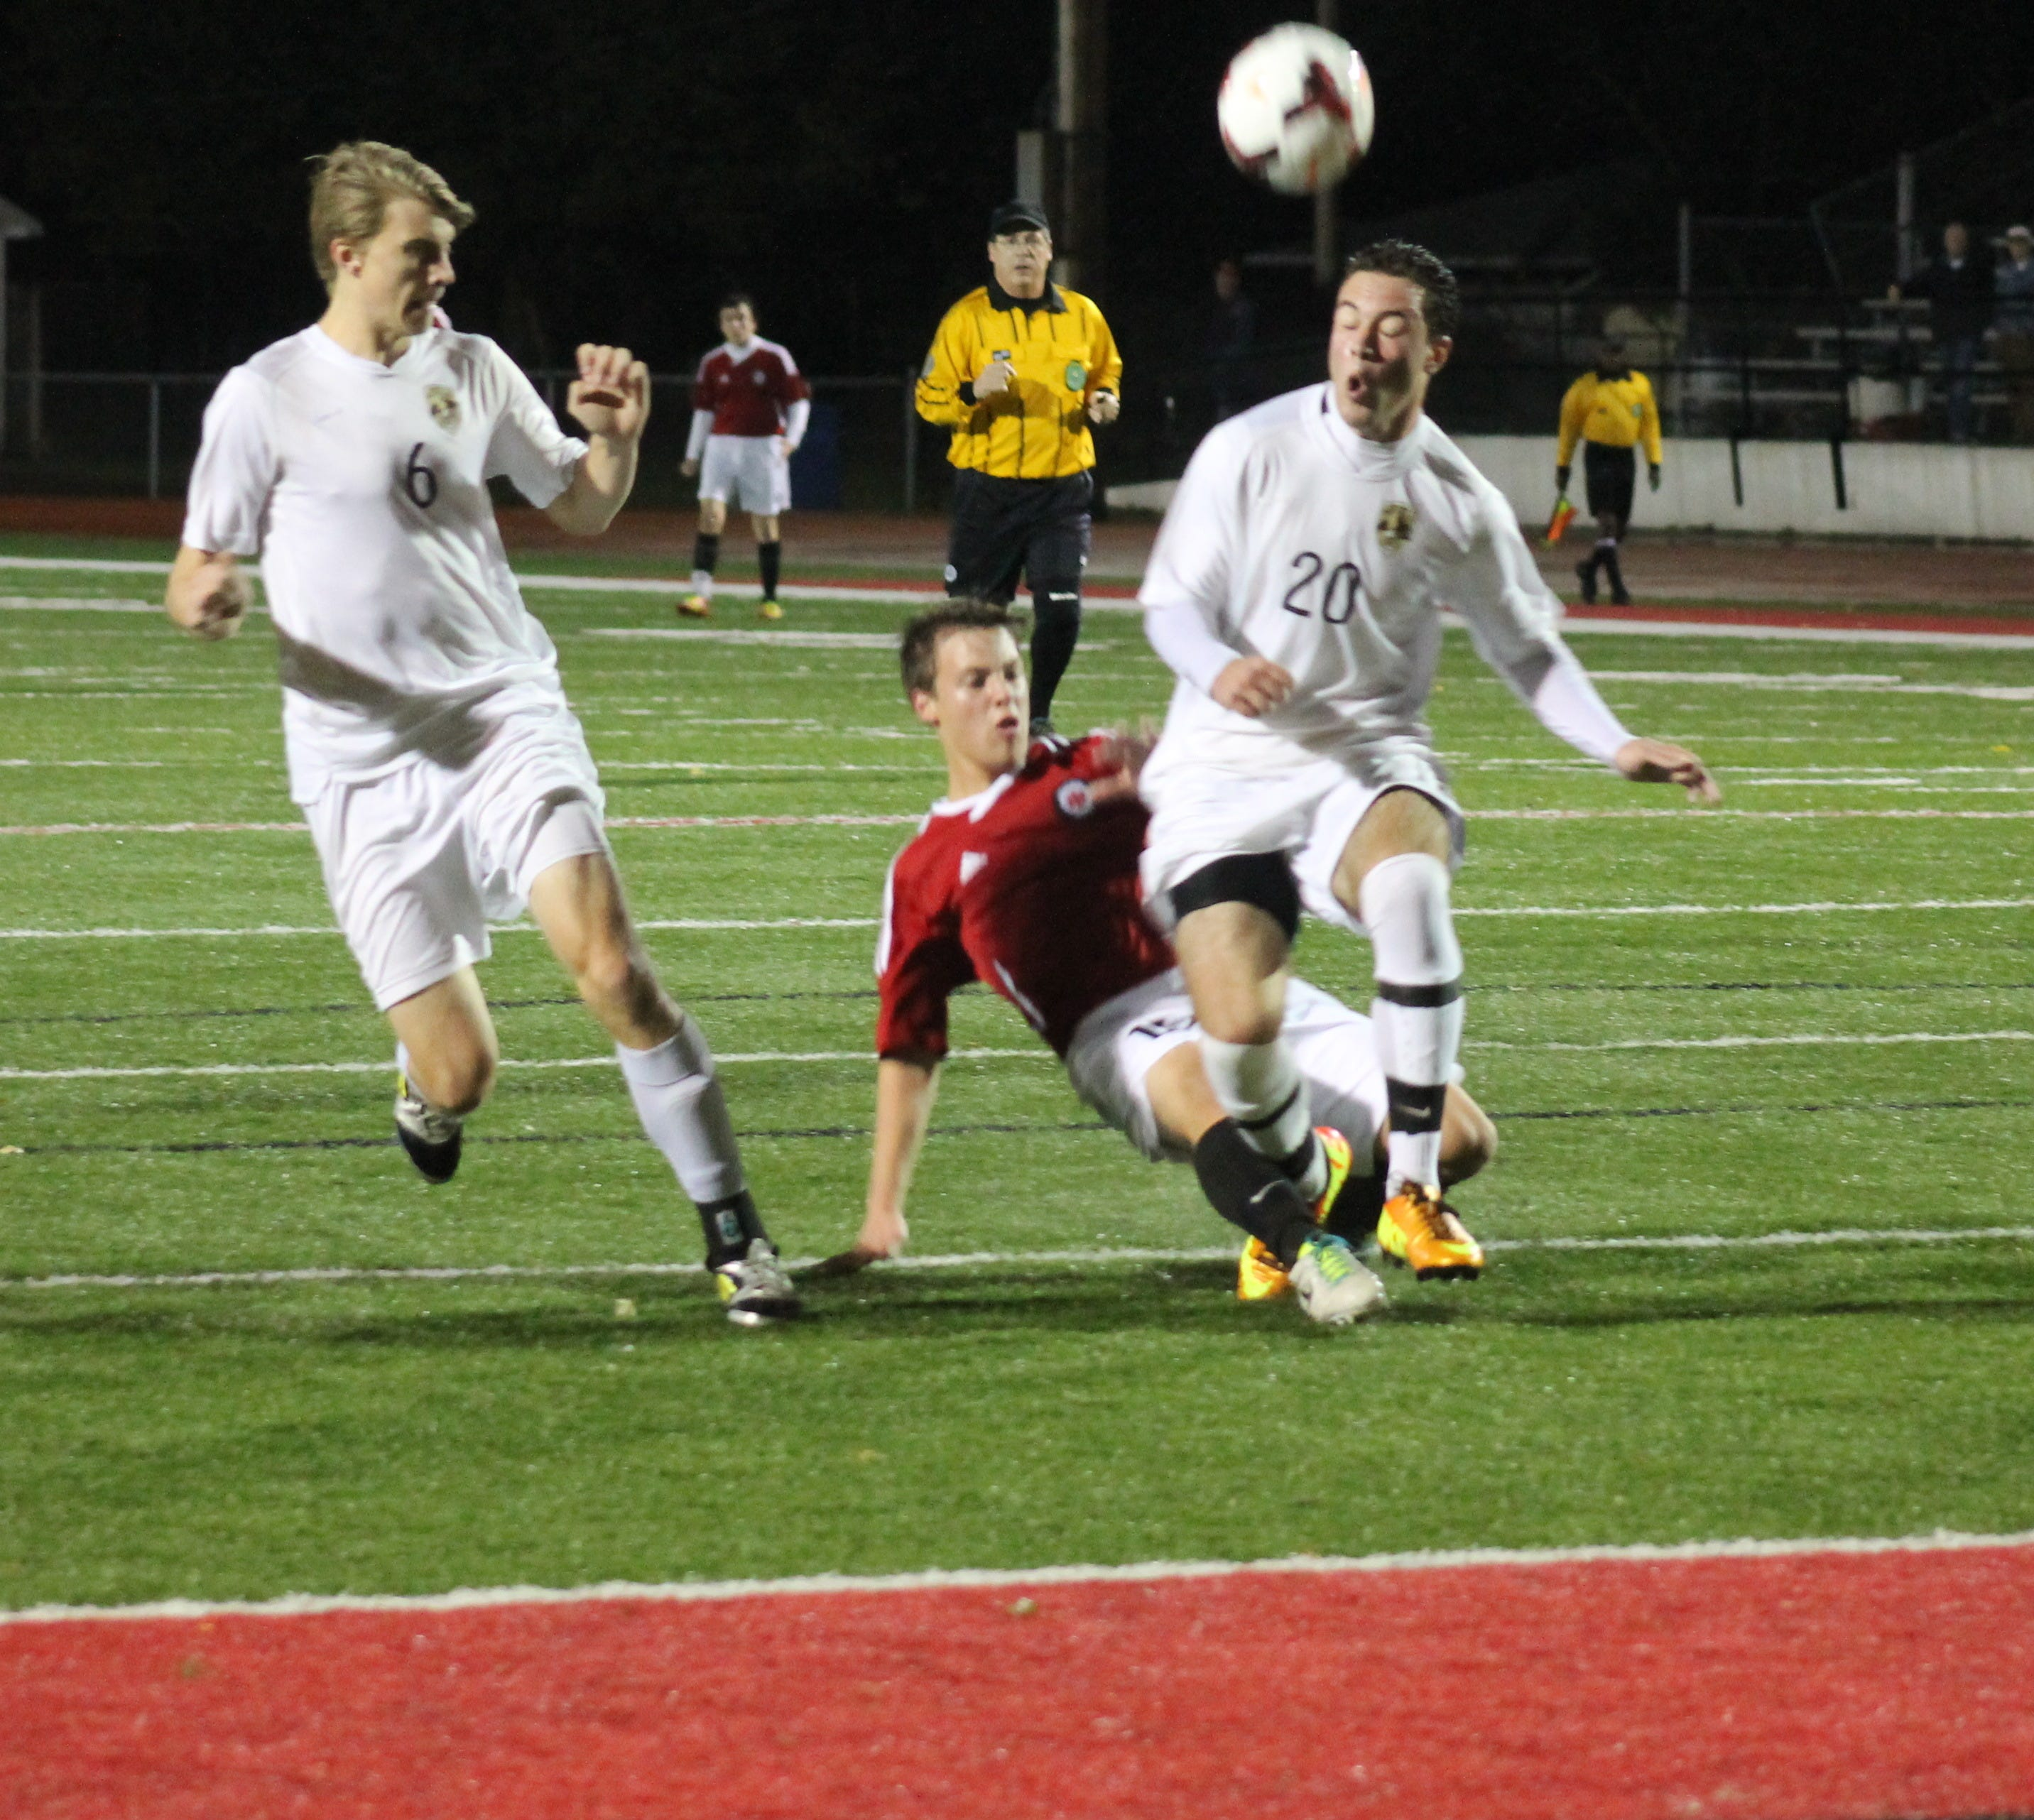 Indian Hill's Brooks Renfro is defended by Mitch Werner (20) and Zach Store (6) in the Division II state semifinal Nov. 6 at Huber Heights Wayne.